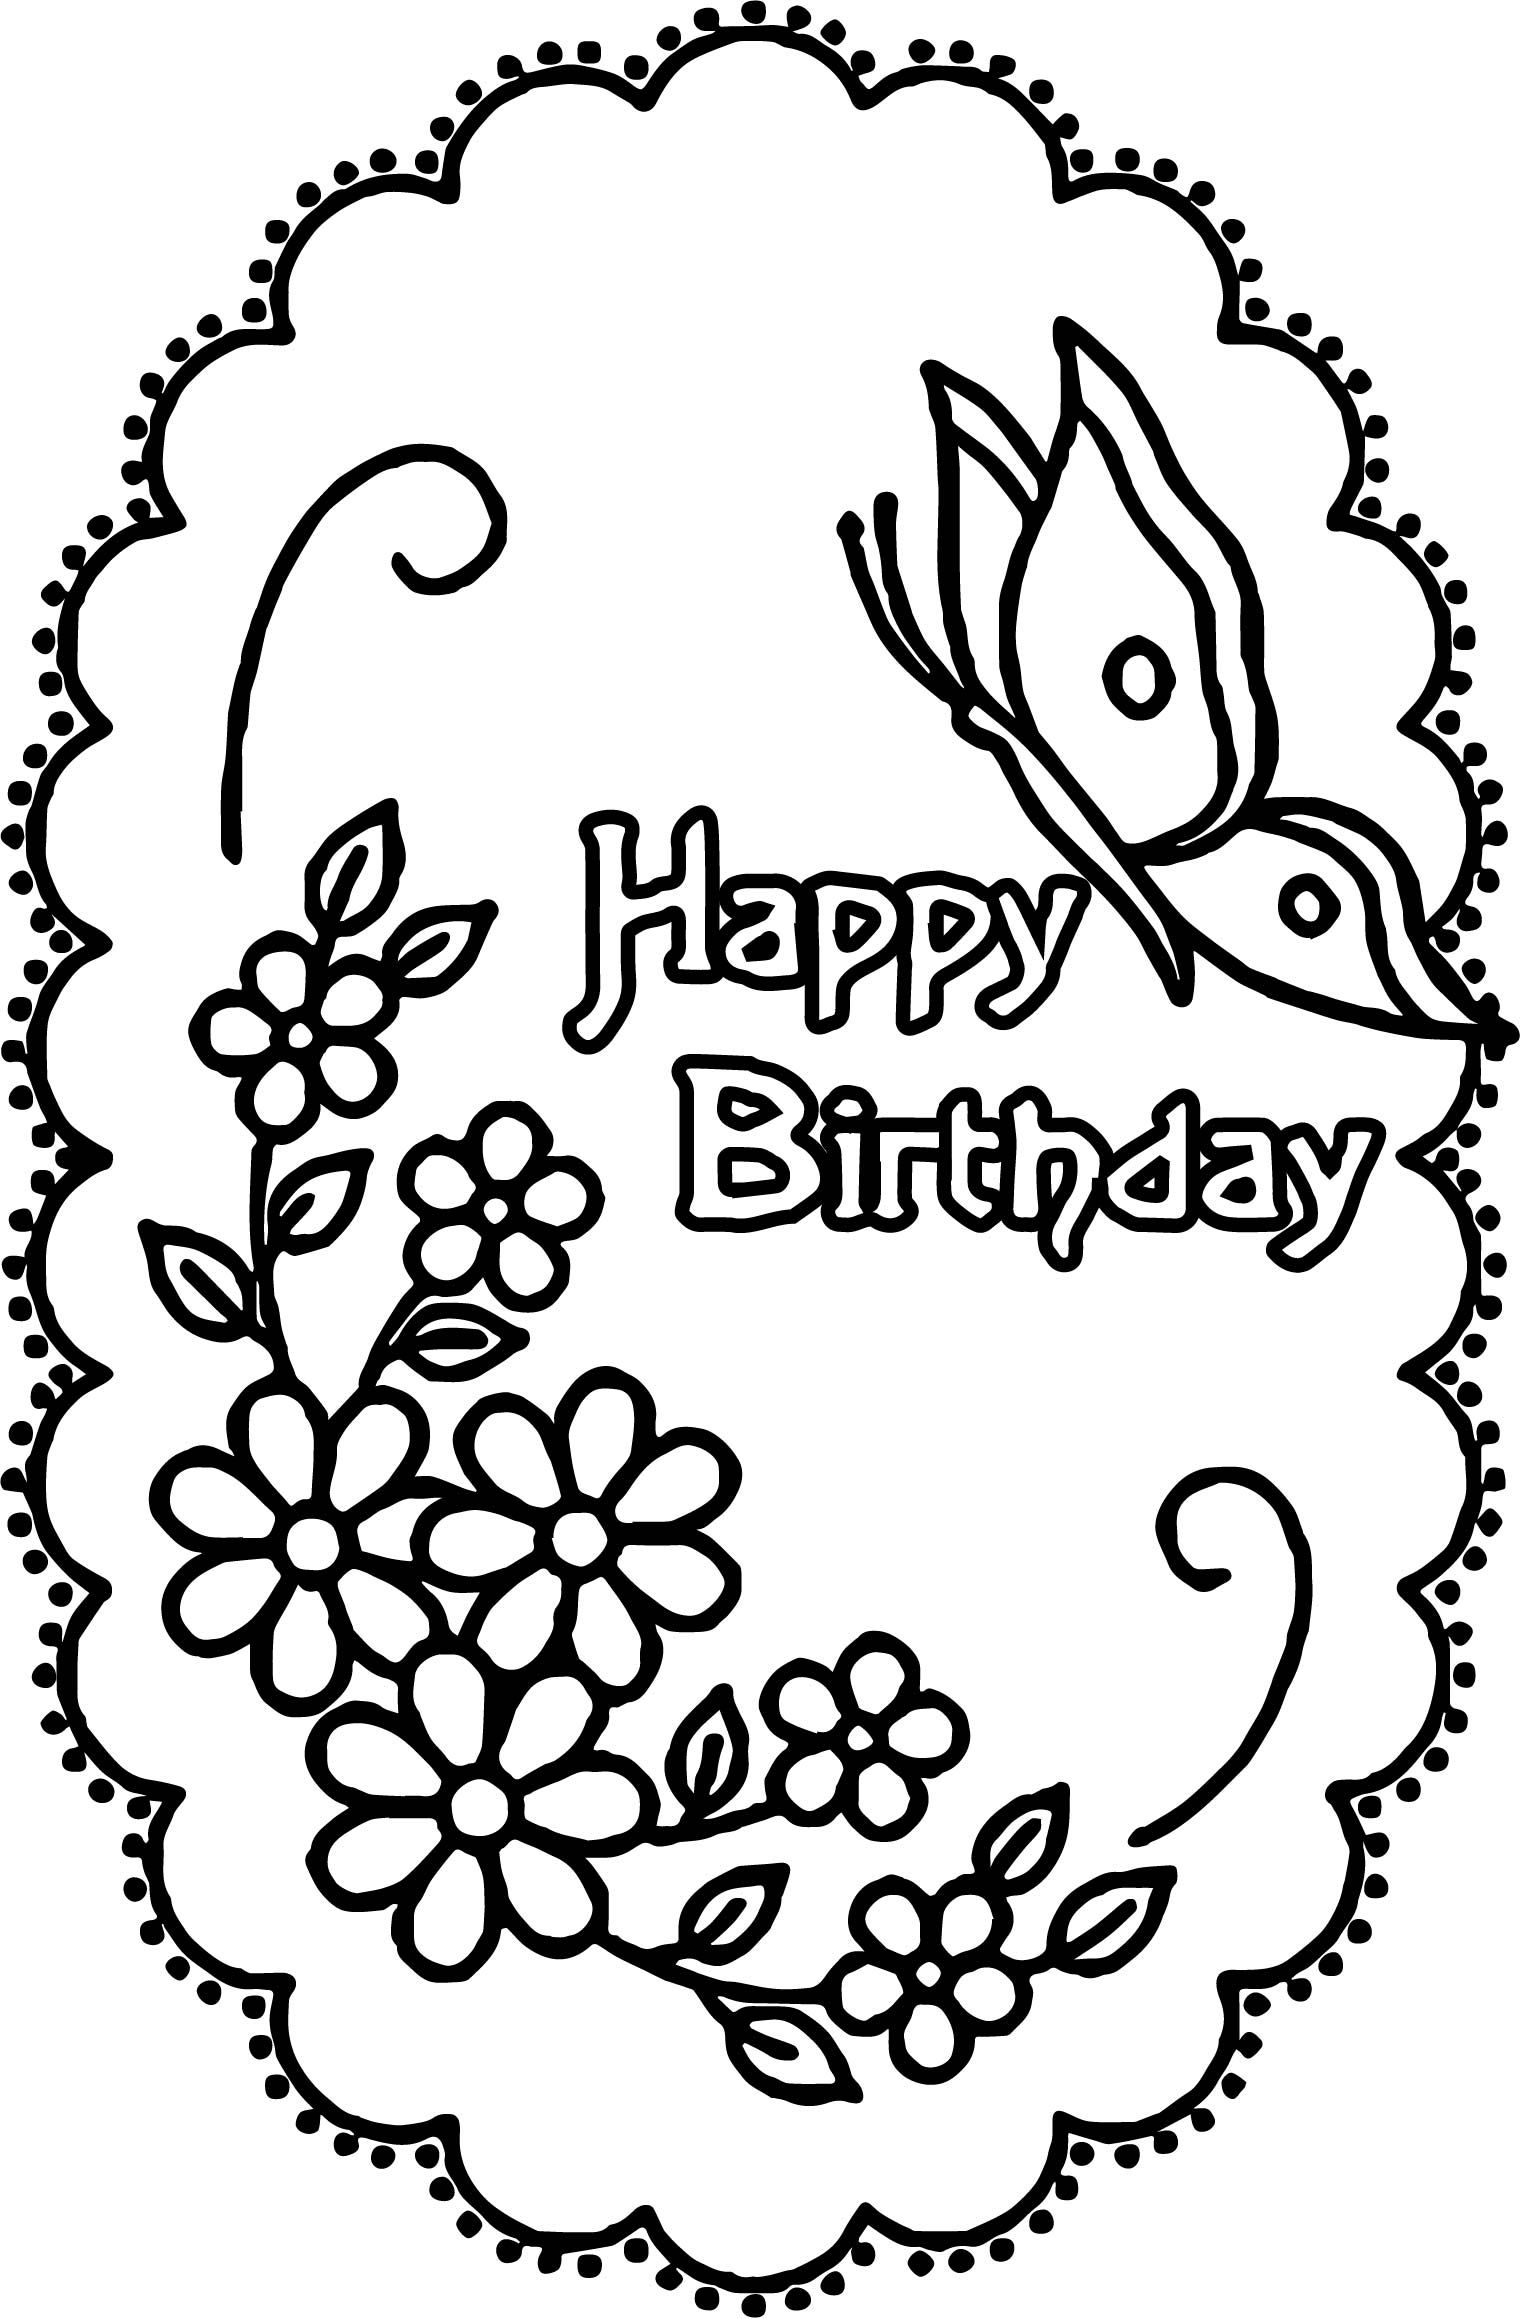 Flowery Happy Birthday Coloring Pages Happy Birthday Coloring Pages Birthday Coloring Pages Butterfly Coloring Page